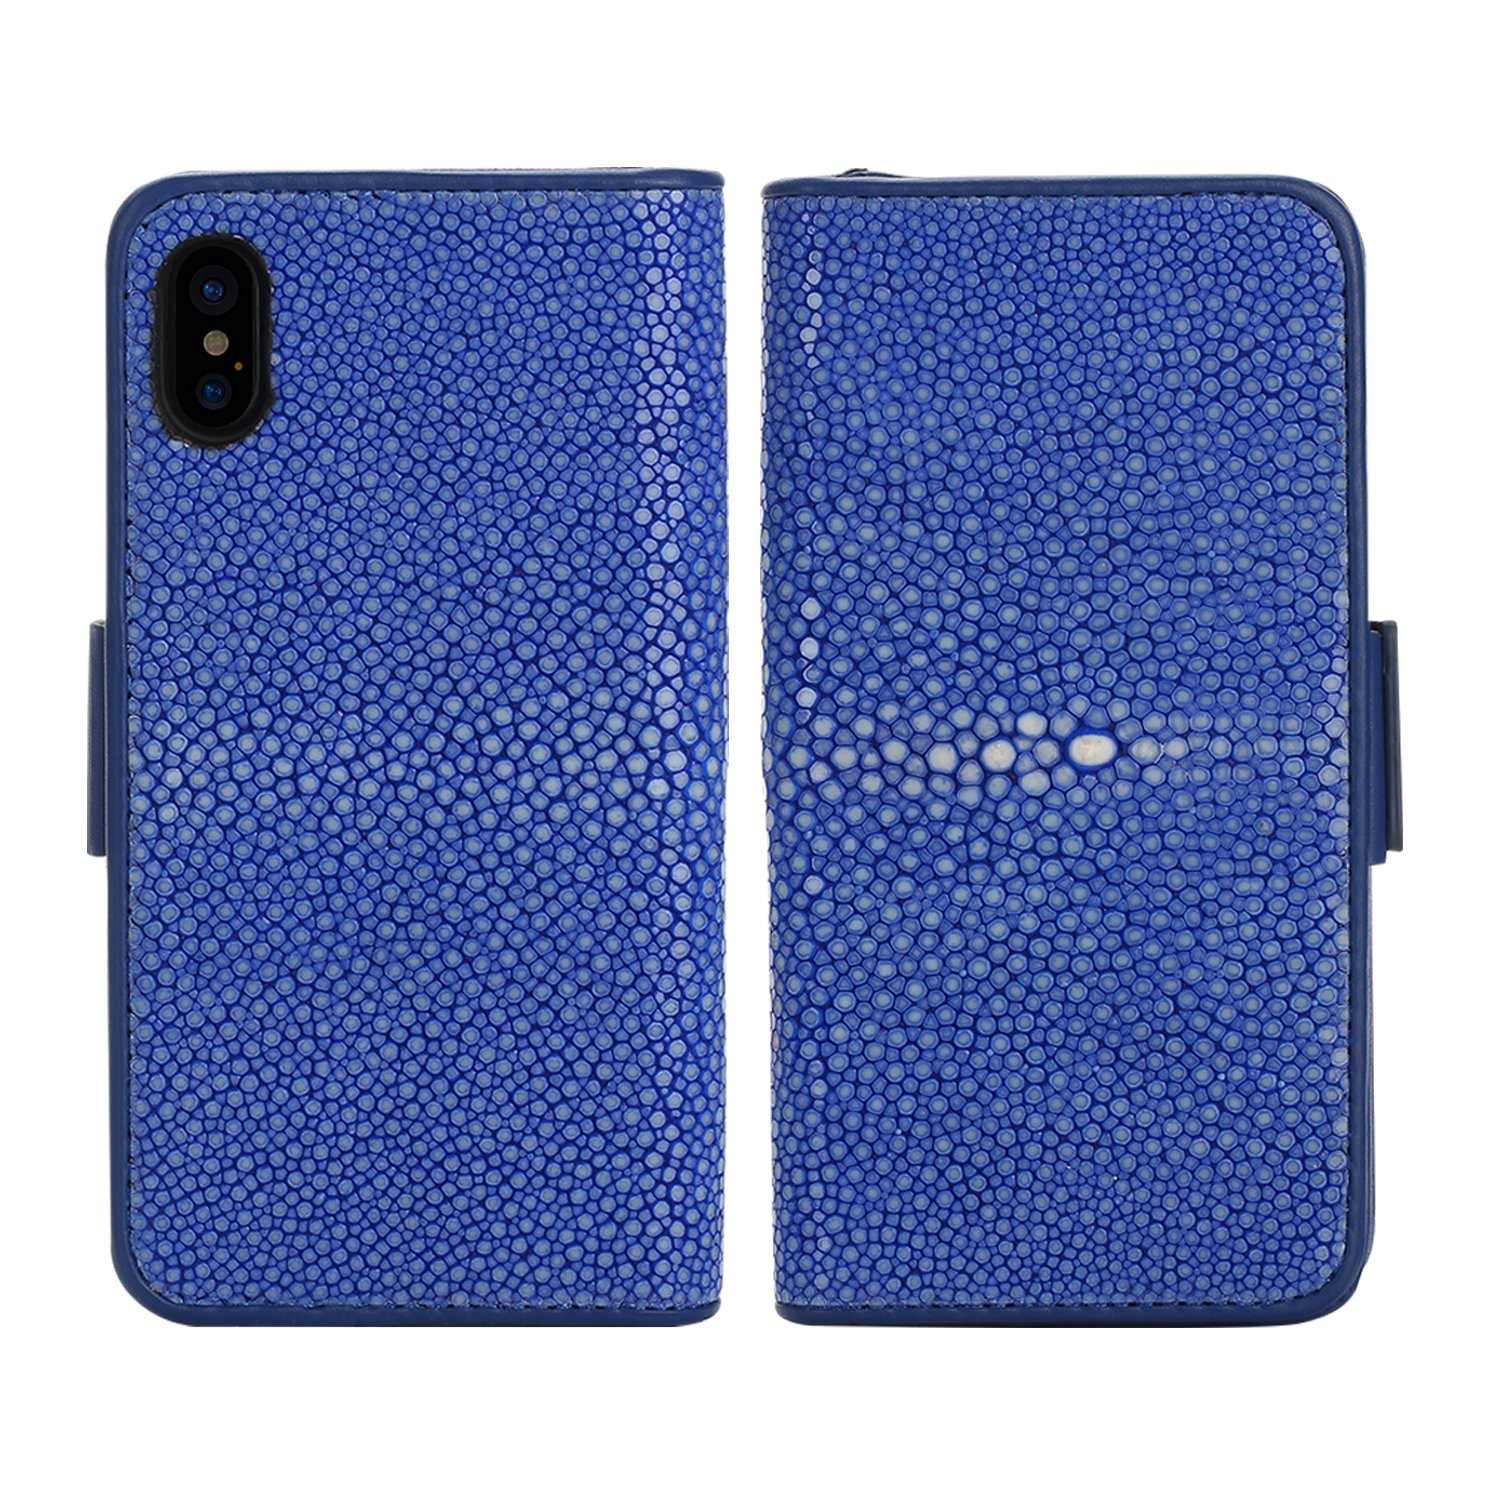 Luxury Wallet Cover For iPhone X (5,8)'' - Hand Made from Genuine Stingray Fish Skin, Premium Case by Trop Saint - Blue